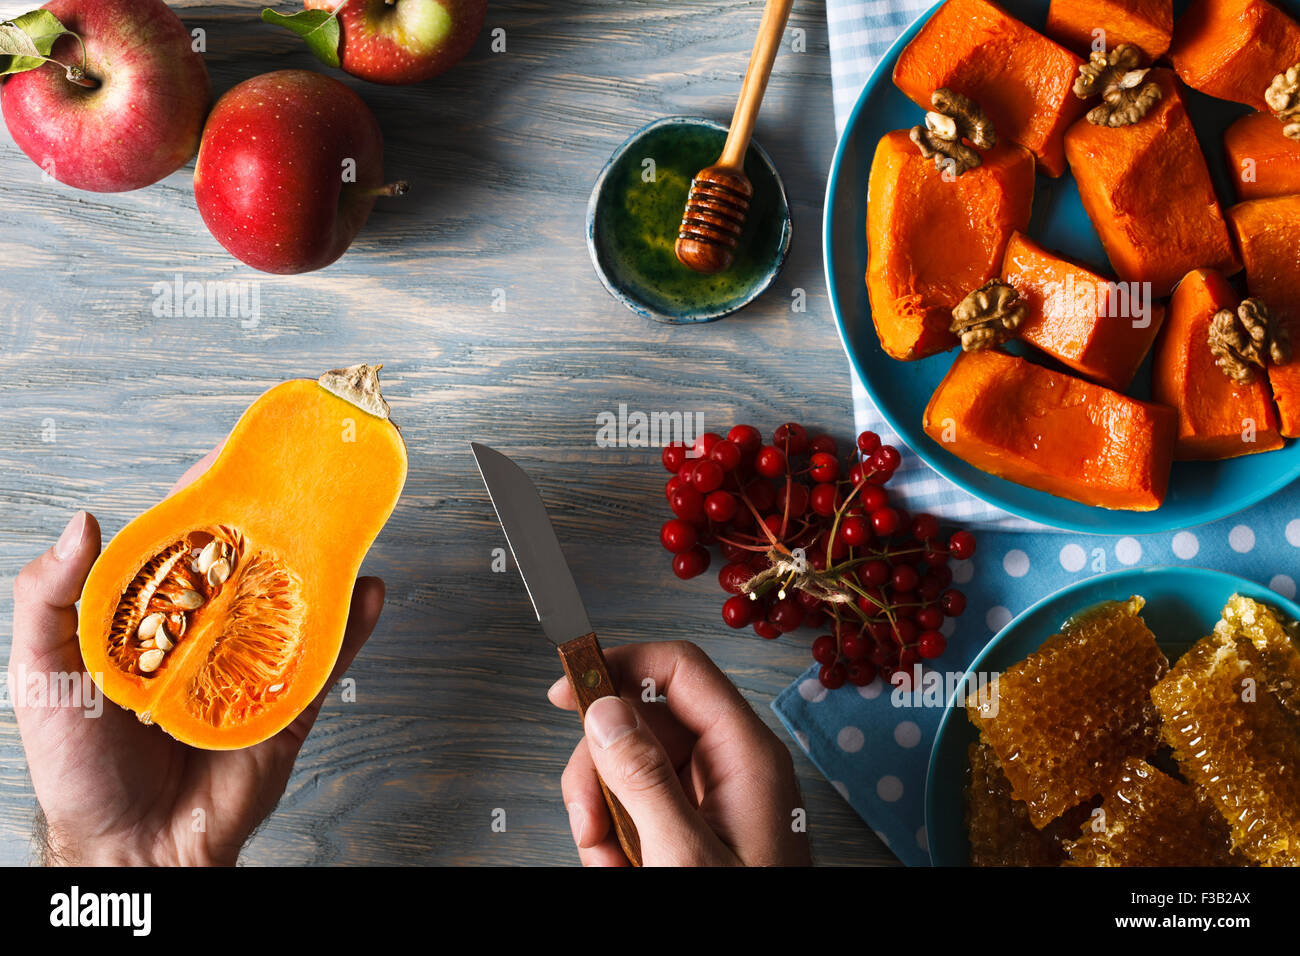 Autumn menu. Man hands holding little pumpkin and a knife against the background of fresh apples, a bunch of viburnum berries, h Stock Photo